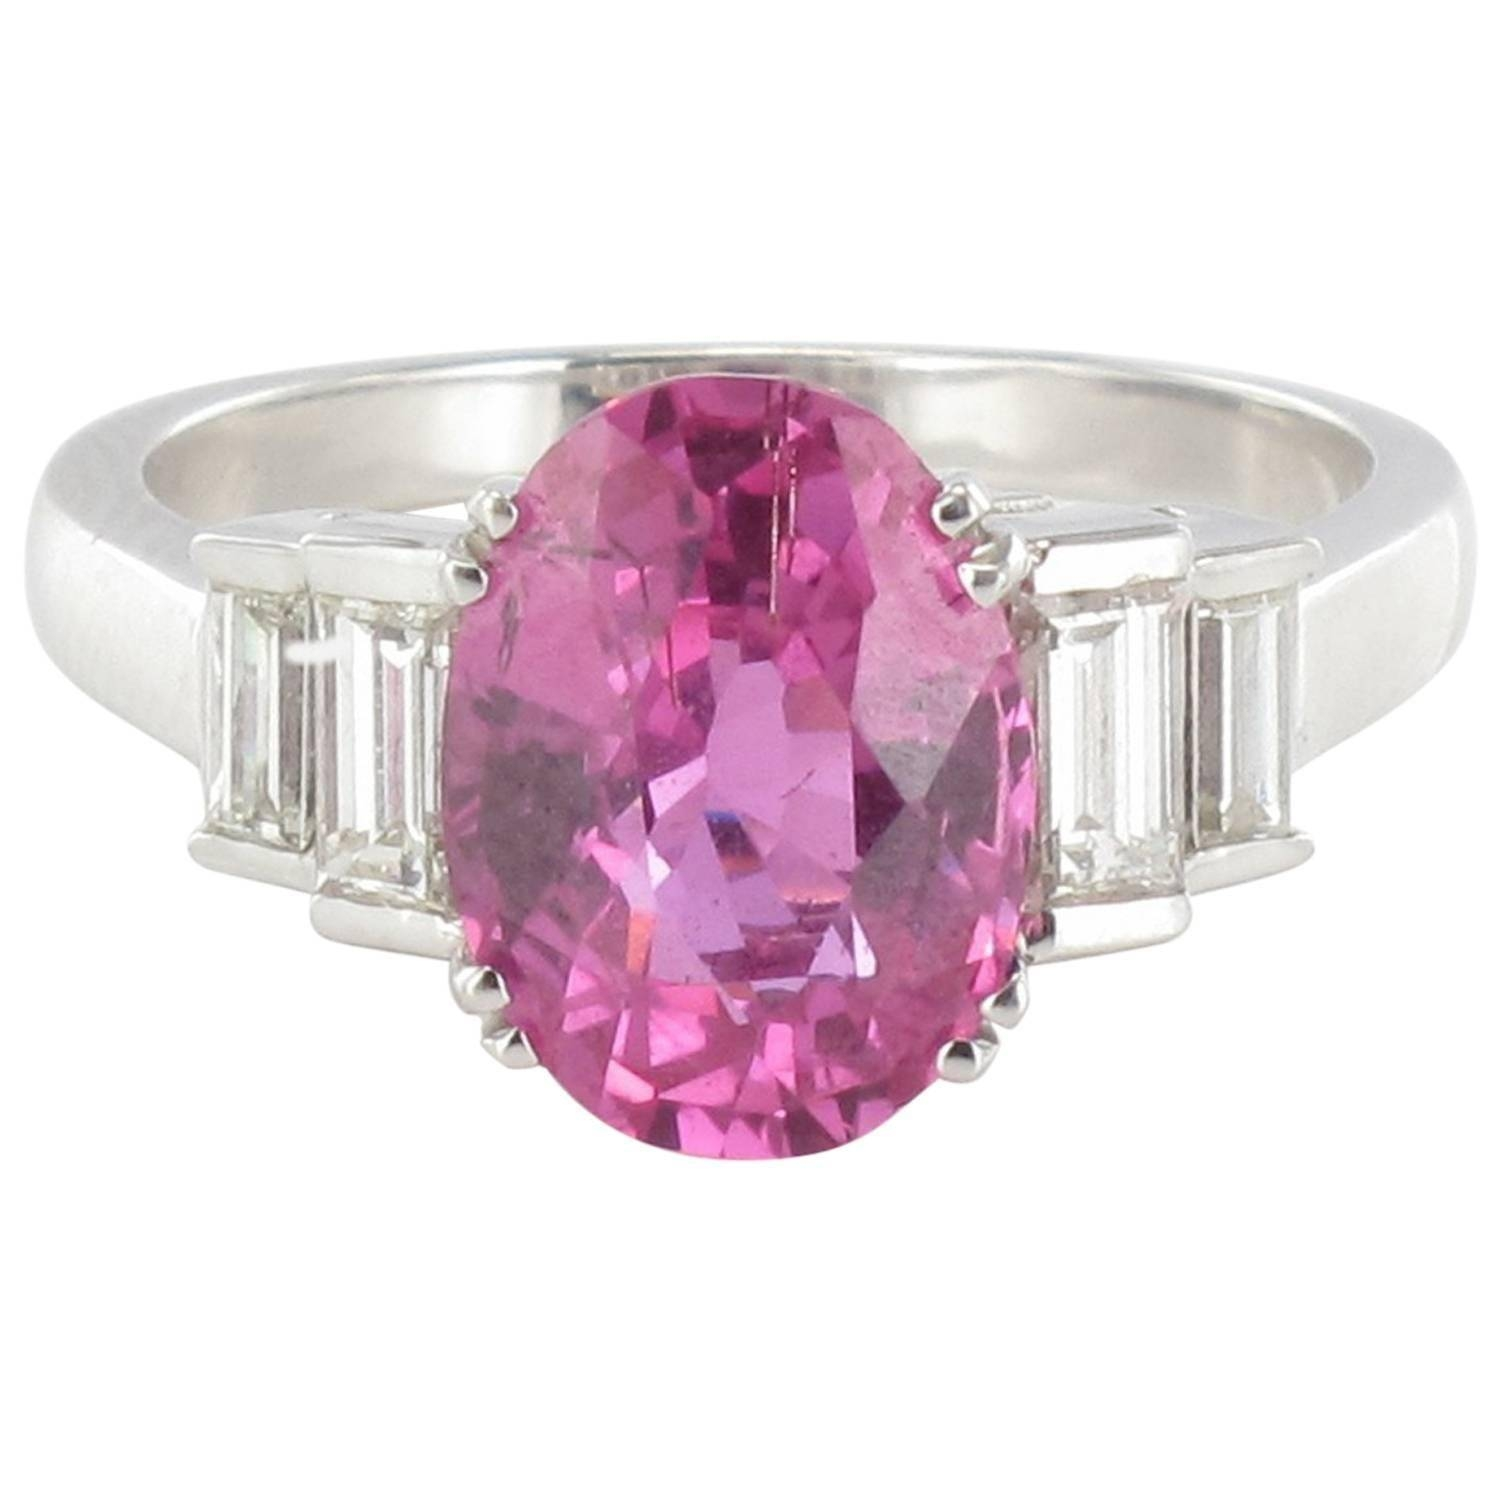 Modern 3.55 Carat Pink Sapphire And Baguette Cut Diamond Ring For Regarding Pink Sapphire And Diamond Engagement Rings (Gallery 12 of 15)